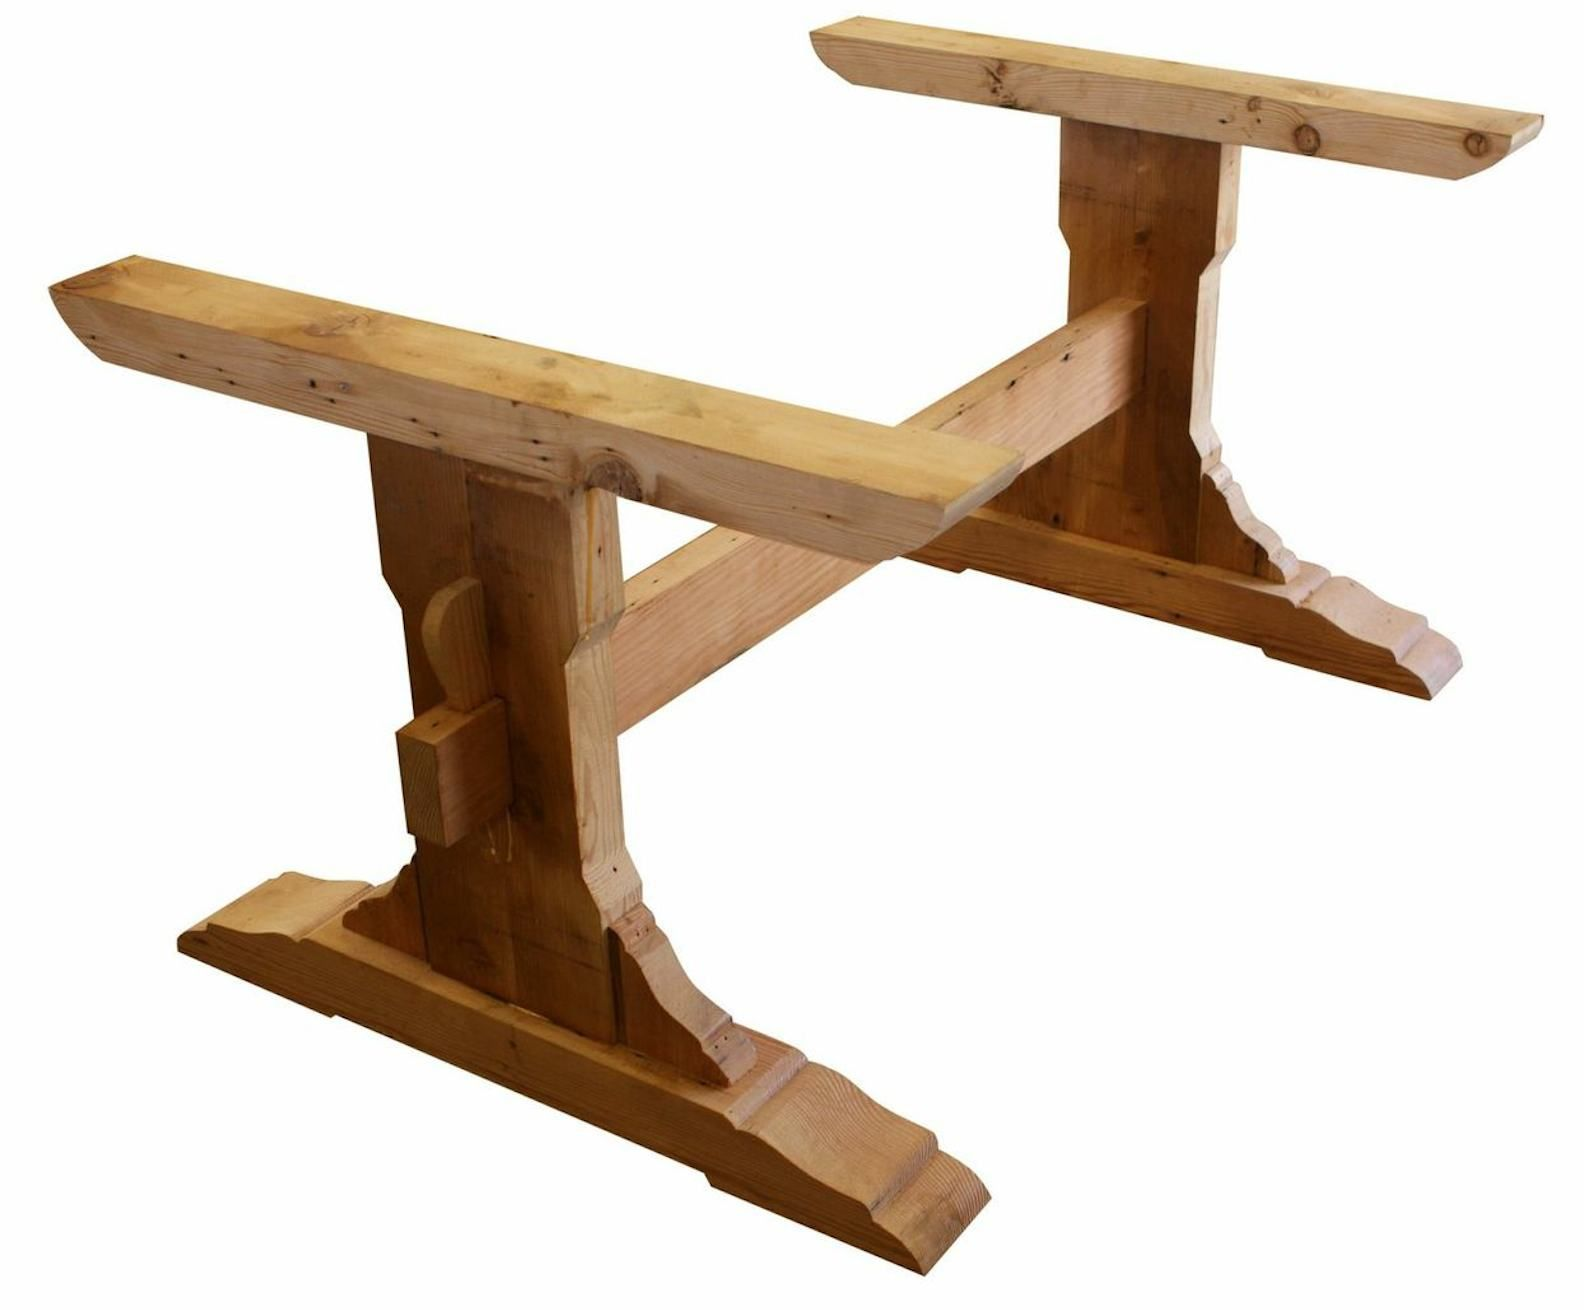 Image Of Reclaimed Wood Trestle Table Woodworking